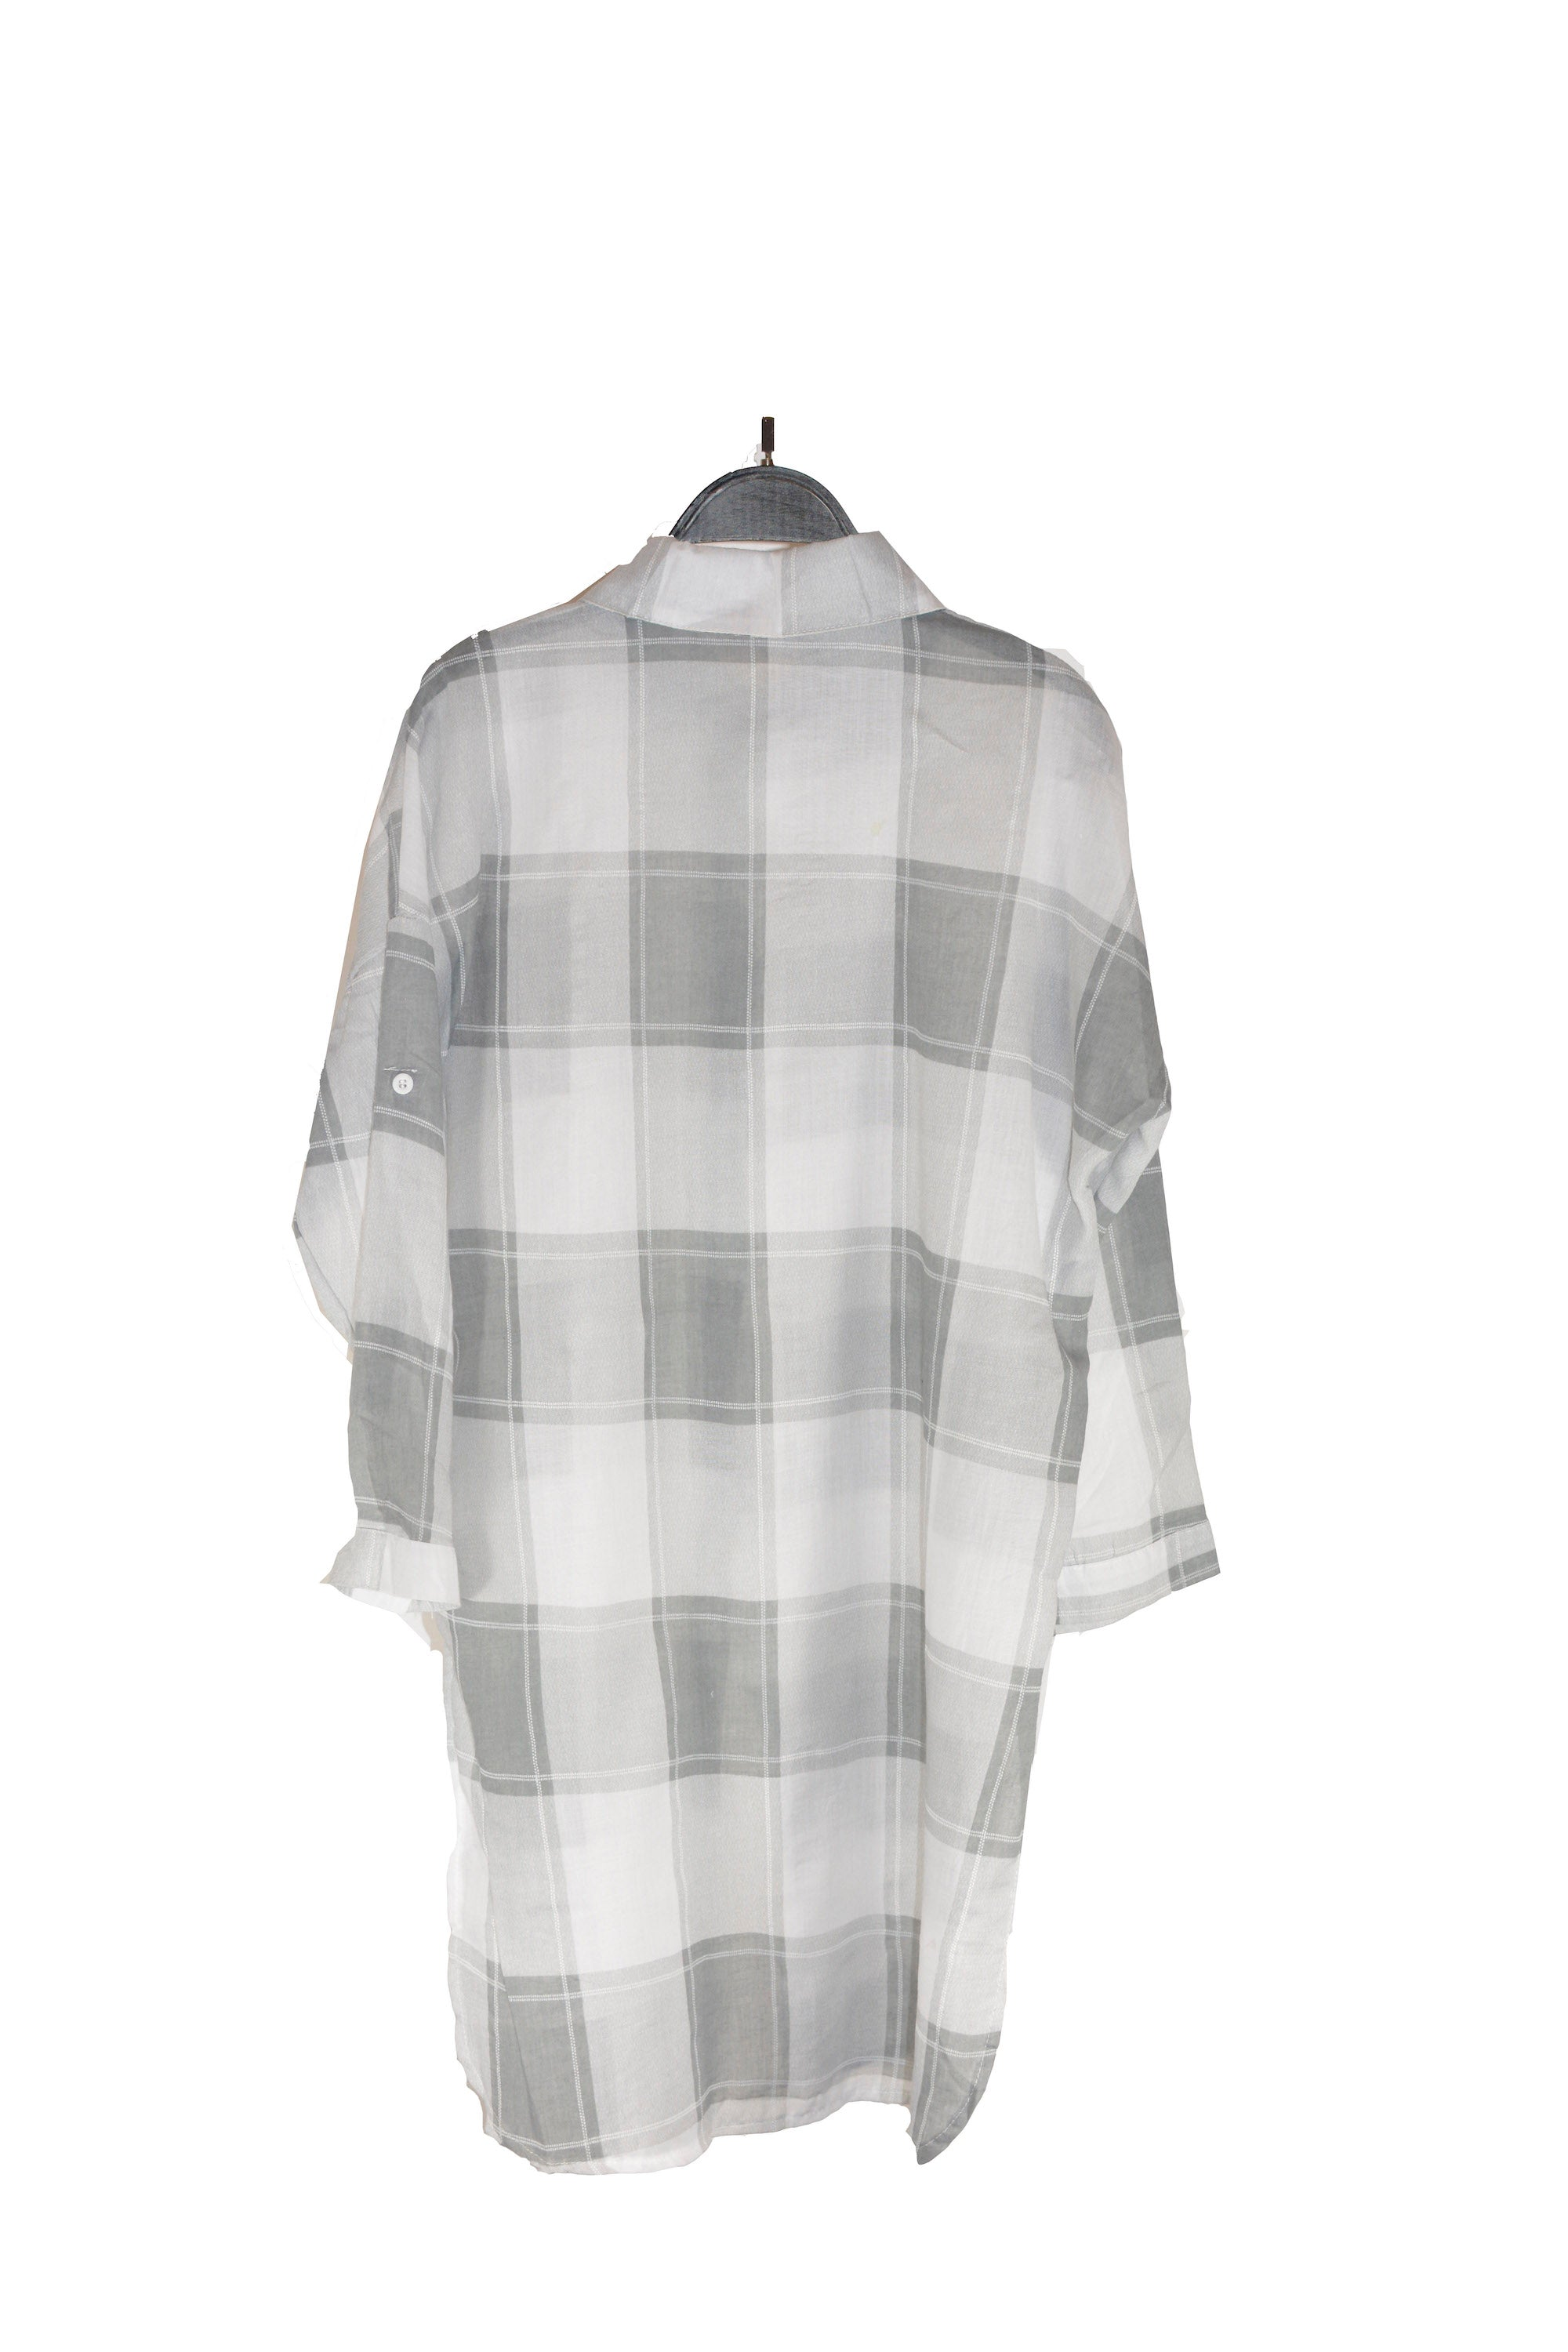 Grey Checkered buttoned-up Shirt With Adjustable Sleeves